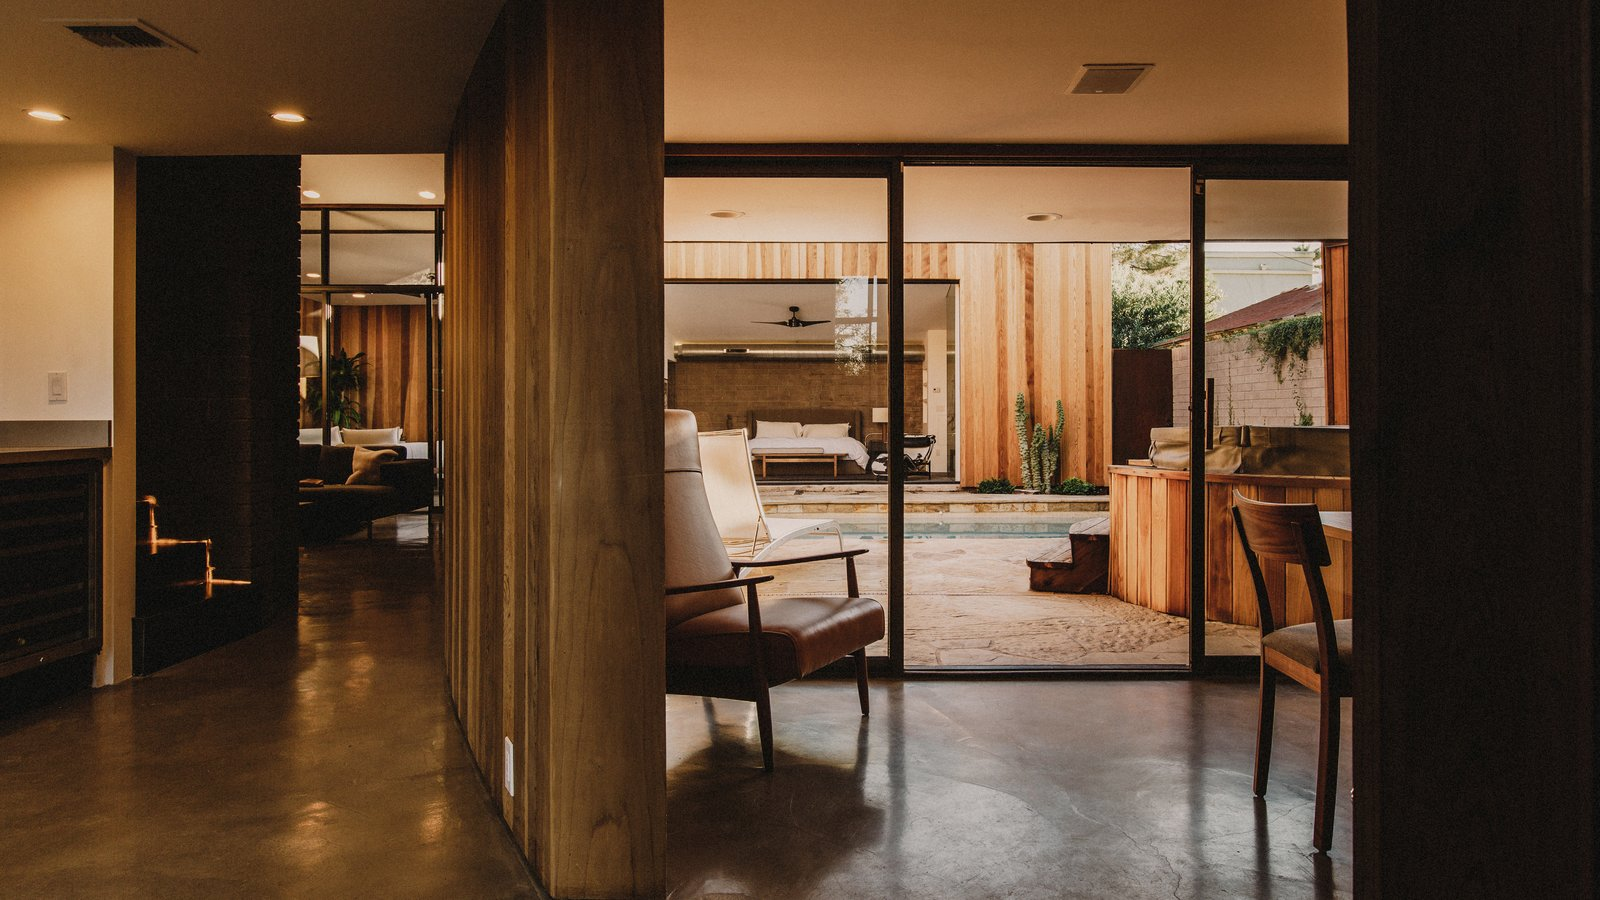 The entry to the house allow multiple sight lines through the house to the various courtyards and patios  Curves House by The Ranch Mine